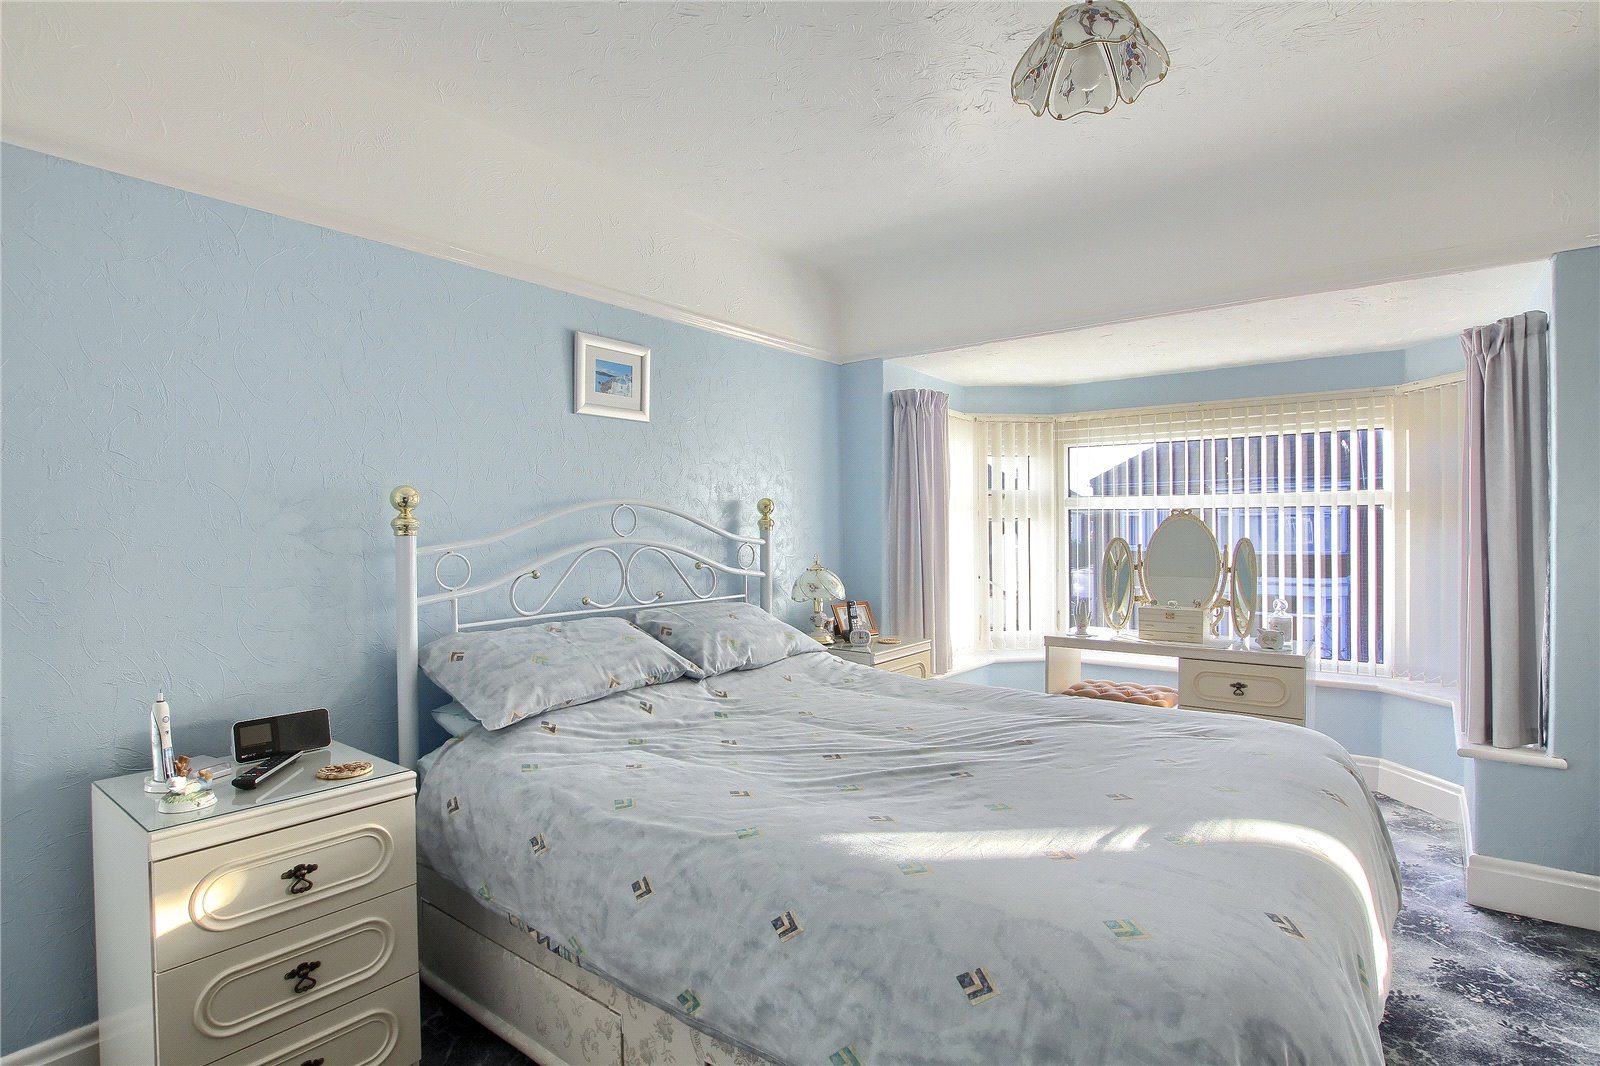 3 bed house for sale in Benton Road, Tollesby  - Property Image 13